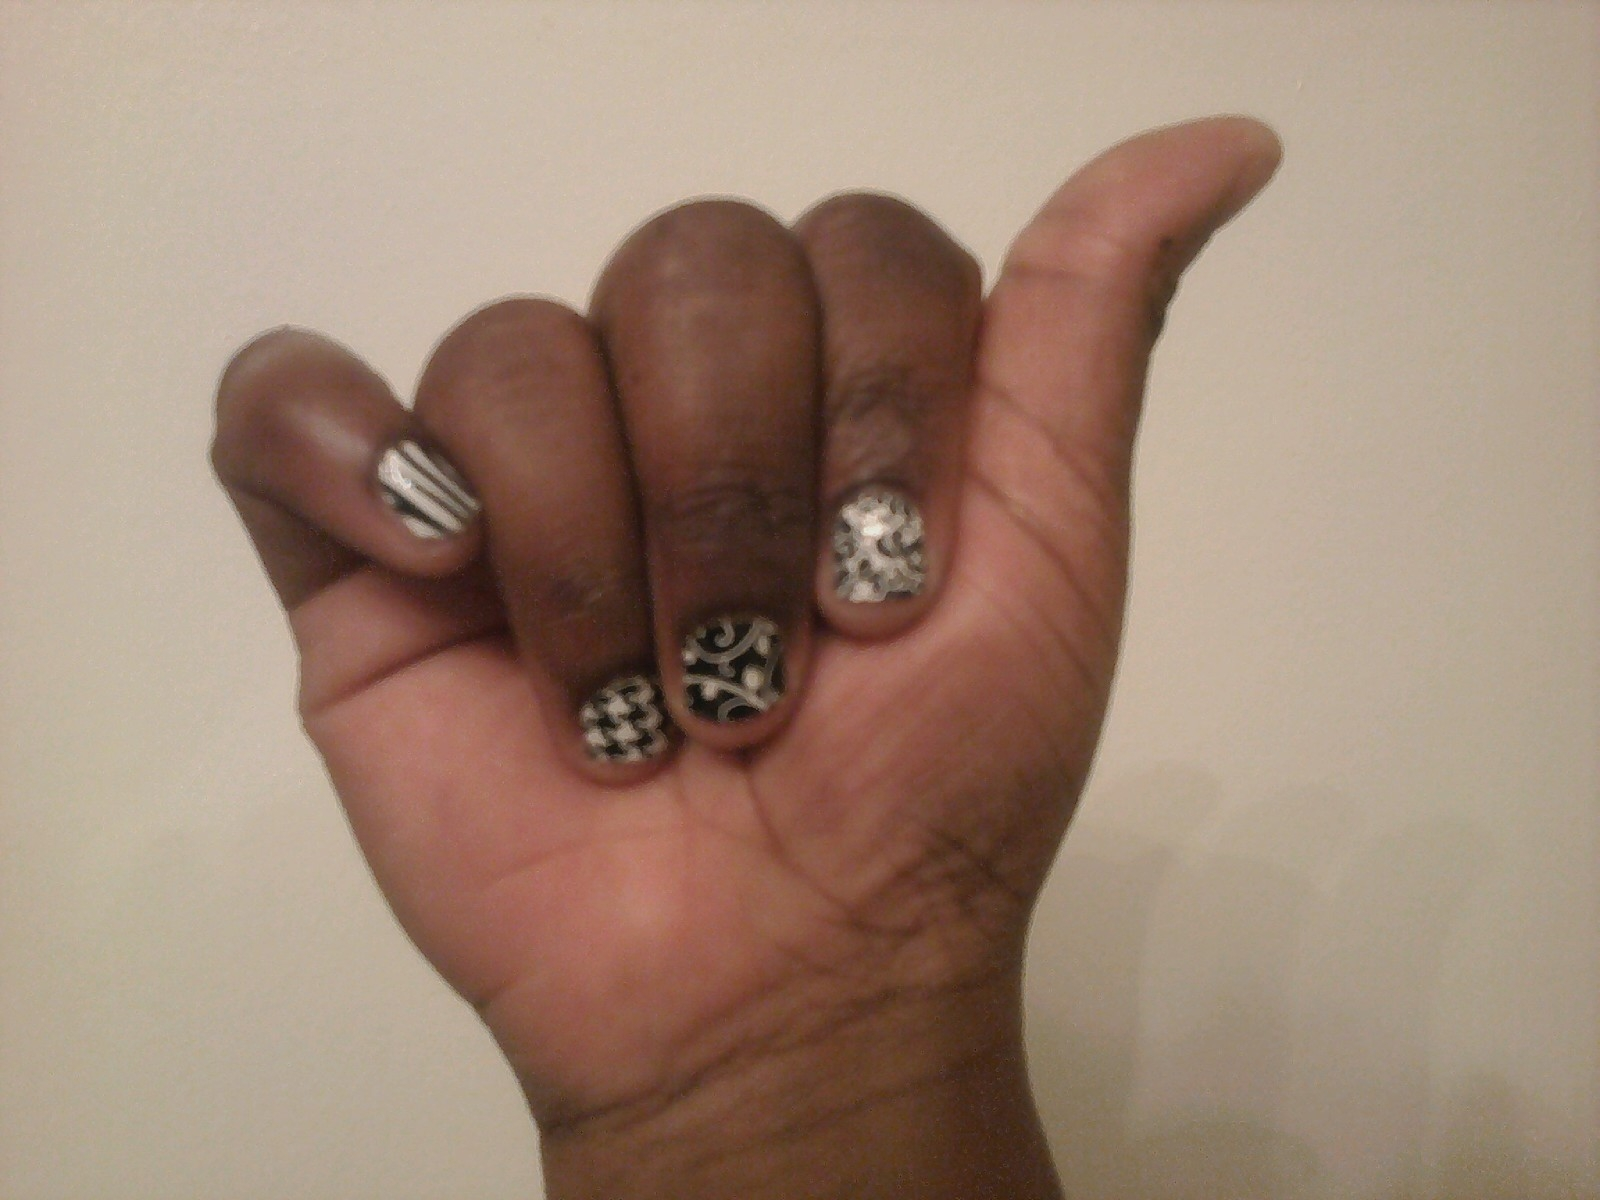 Pop Review: Jamberry Nail Shields by Jamberry | You Make It Pop